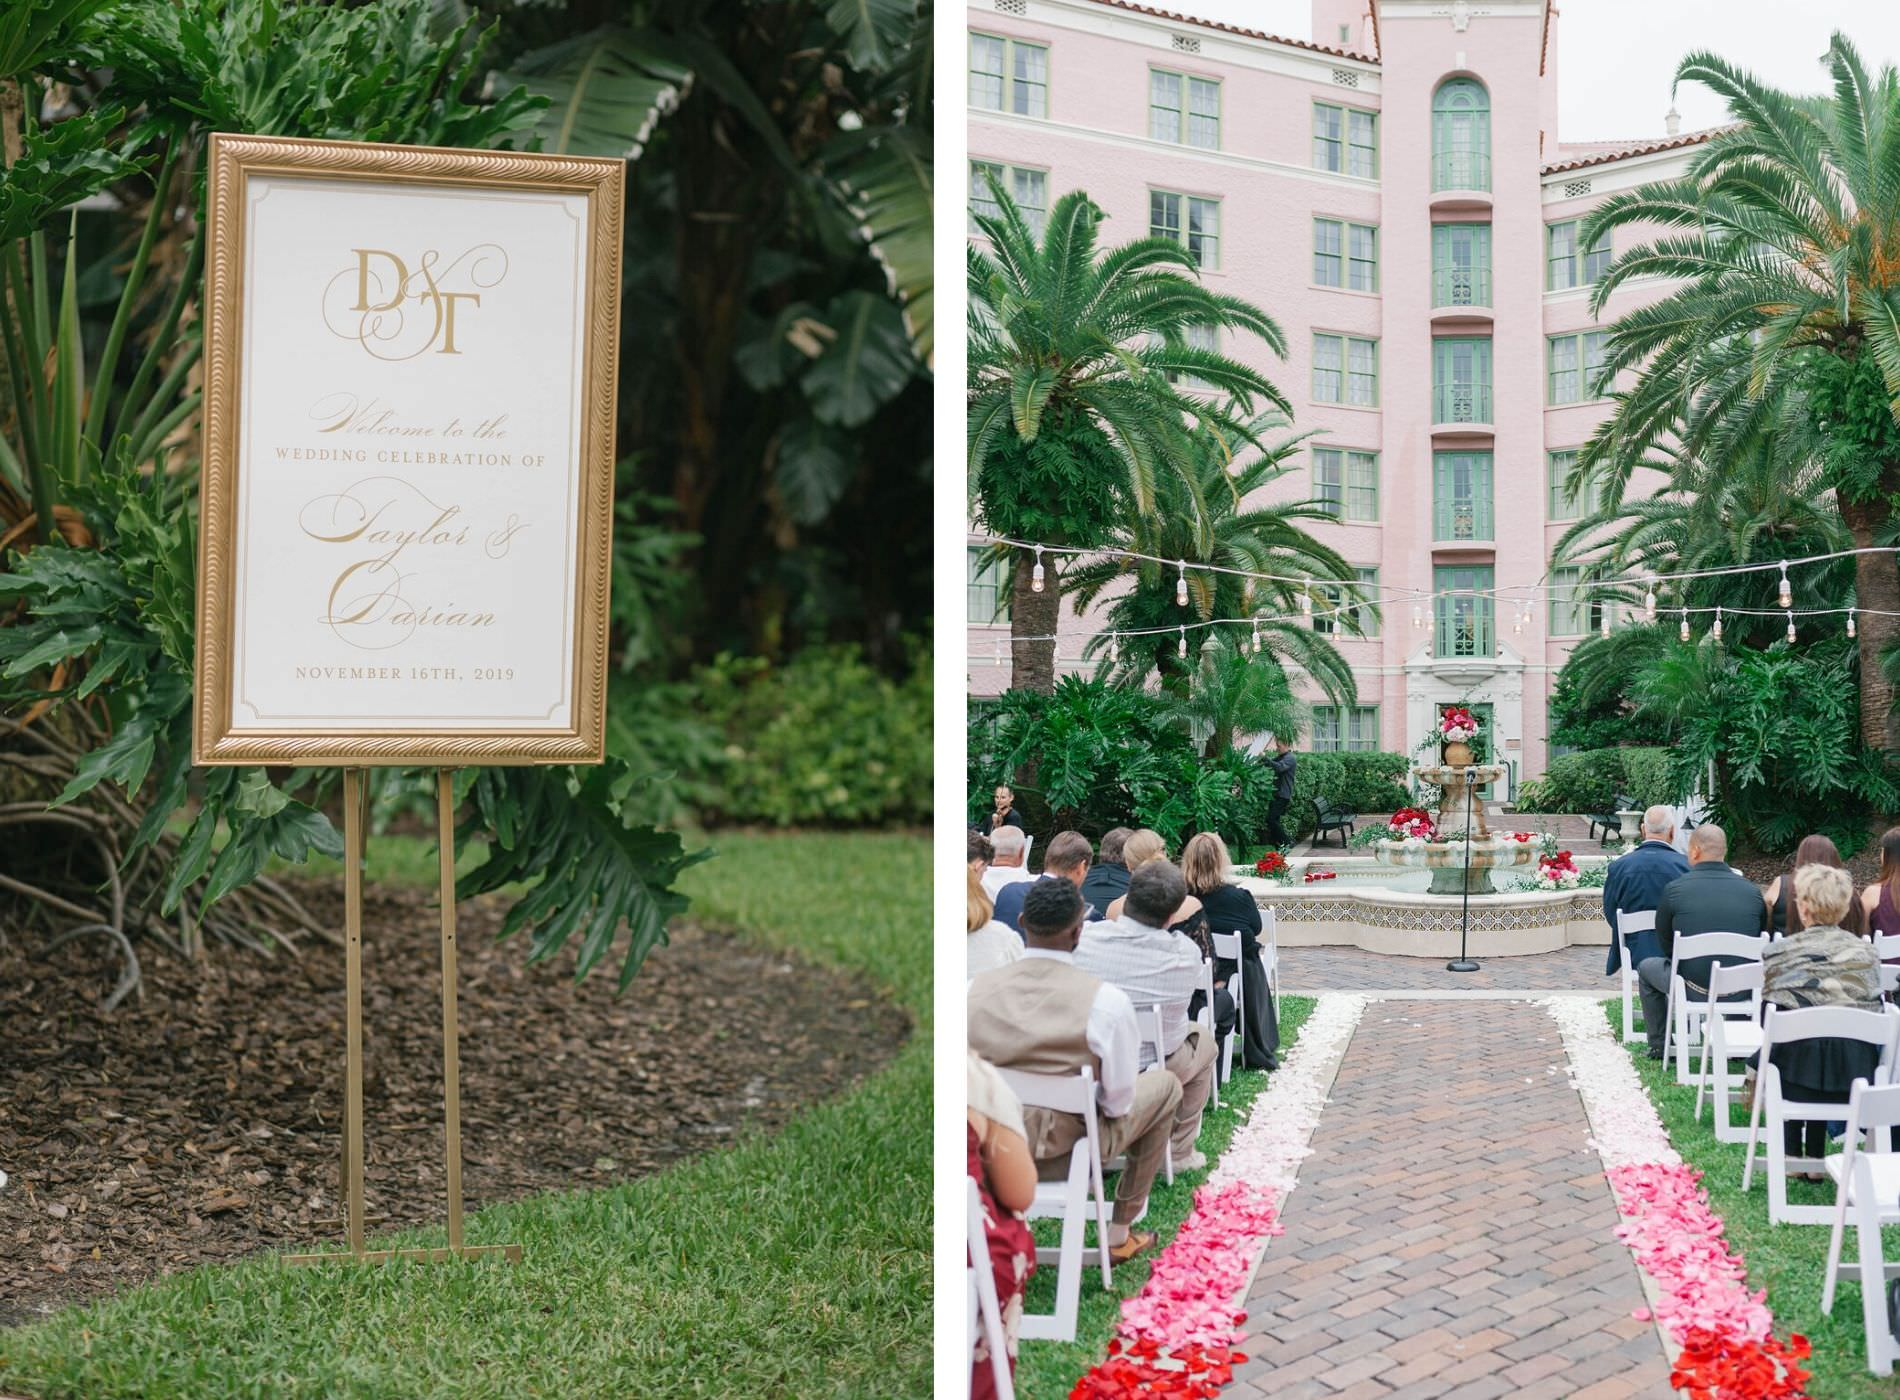 Romantic Wedding Ceremony Decor, Gold Frame Monogram Welcome Sign   Hotel Courtyard with String Lights and Fountain Decorated with Red and Blush Pink Roses and Flower Petals in Aisle   Tampa Wedding Florist Bruce Wayne Florals   Wedding Planner Parties A'la Carte   St. Petersburg Wedding Venue The Vinoy Renaissance